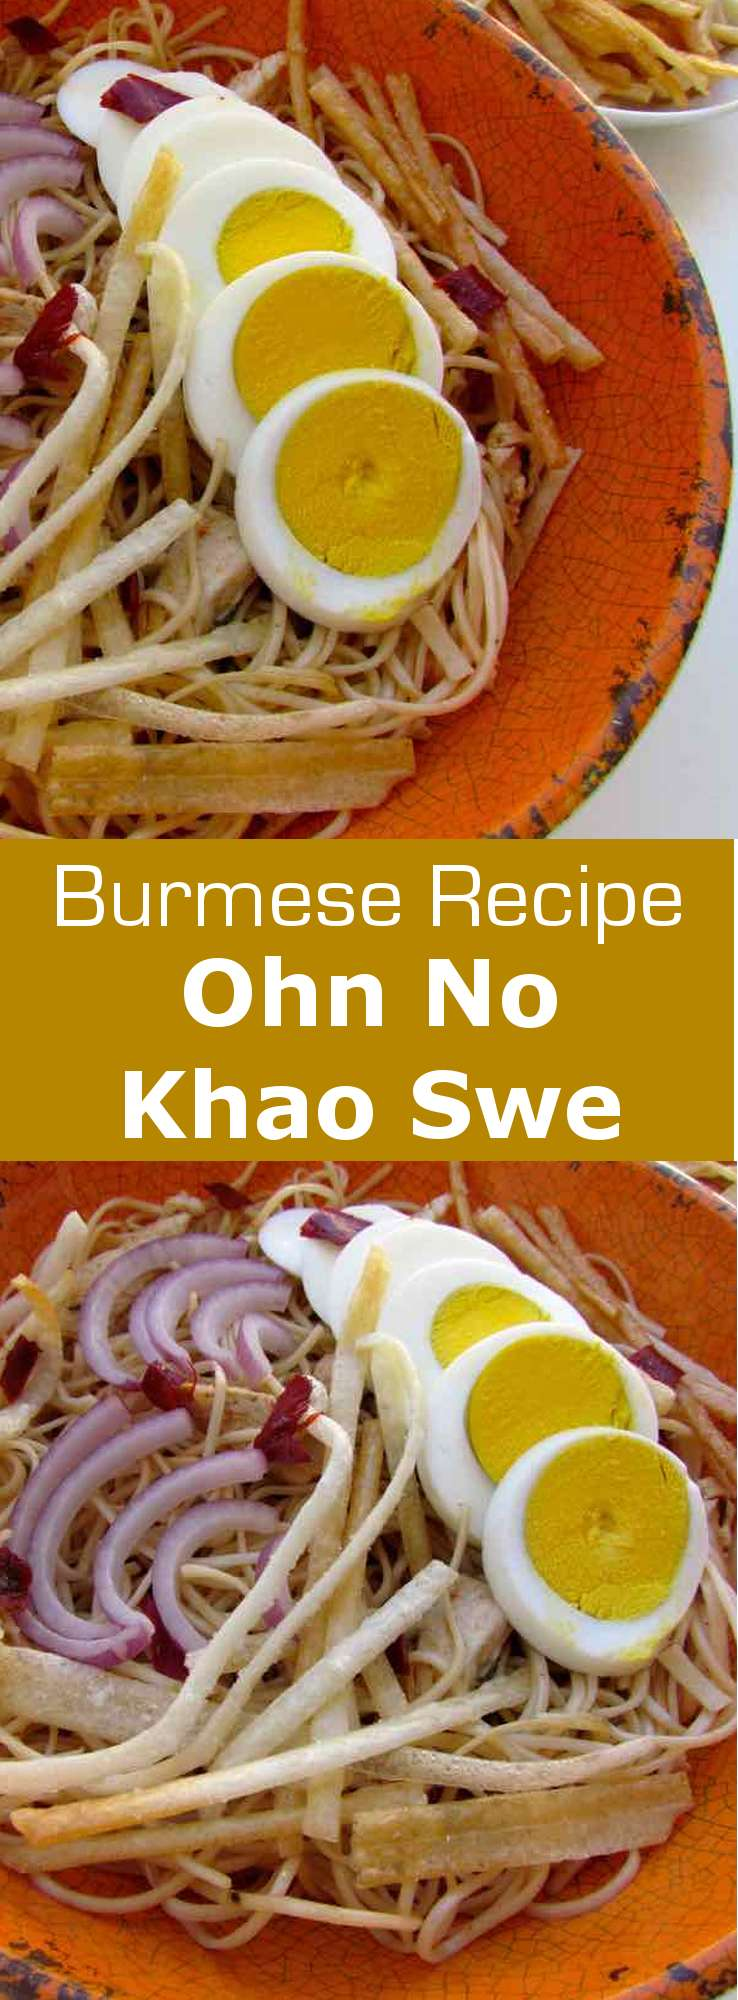 Ohn no kauk swe is a famous Burmese recipe prepared with wheat noodles in a chicken curry and coconut milk broth and topped with fried rice noodles. #burma #myanmar #196flavors